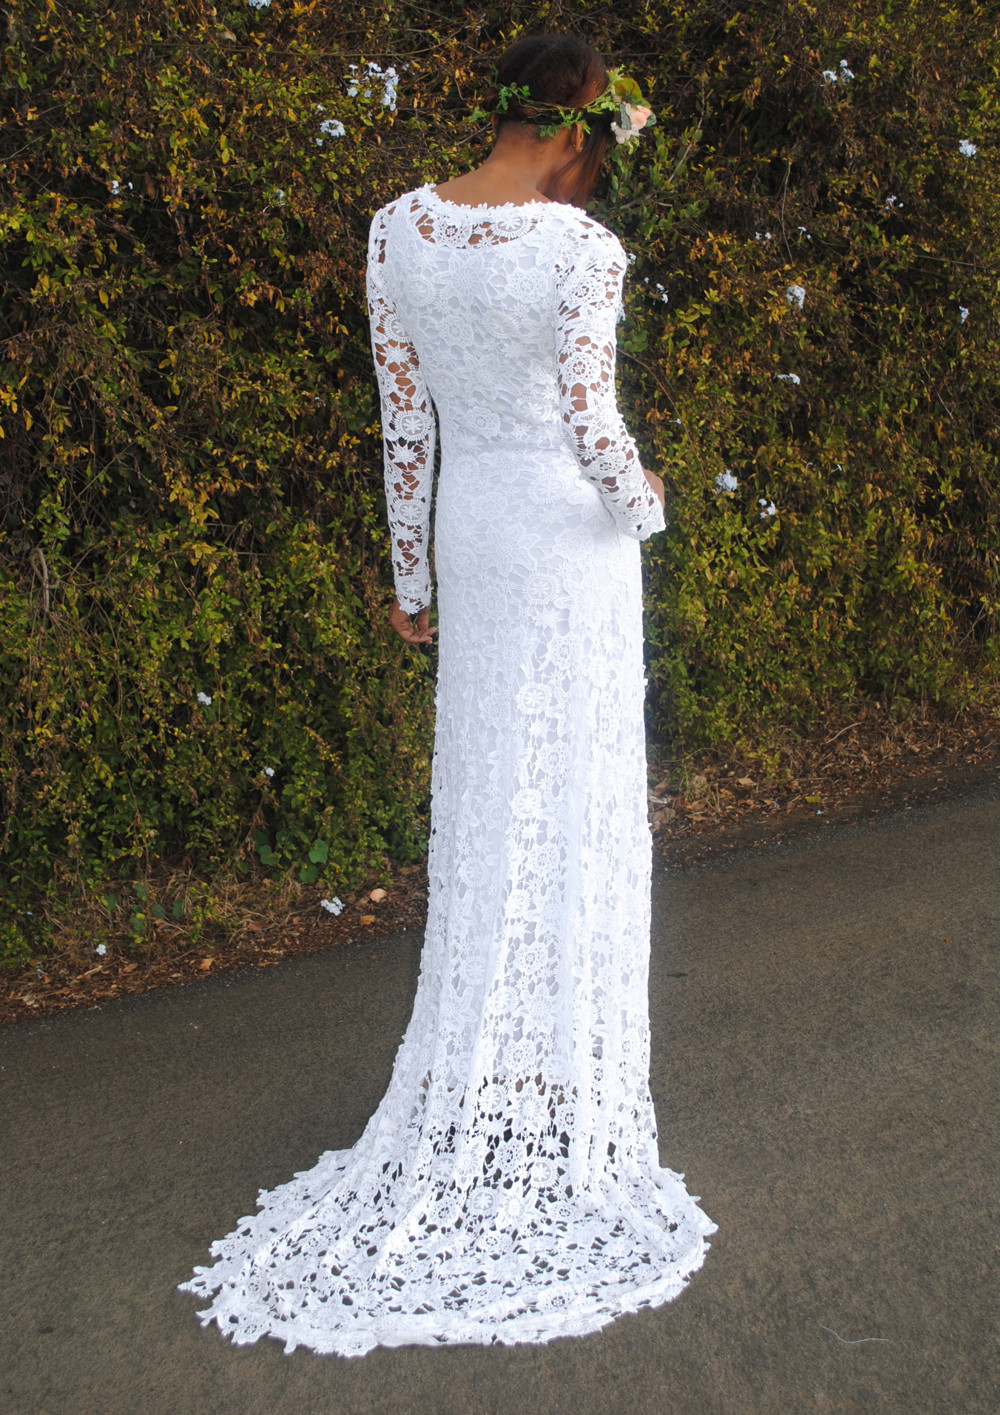 Crochet Wedding Best Of Ivory or White Crochet Lace Bohemian Wedding Dress Of Beautiful 41 Pics Crochet Wedding